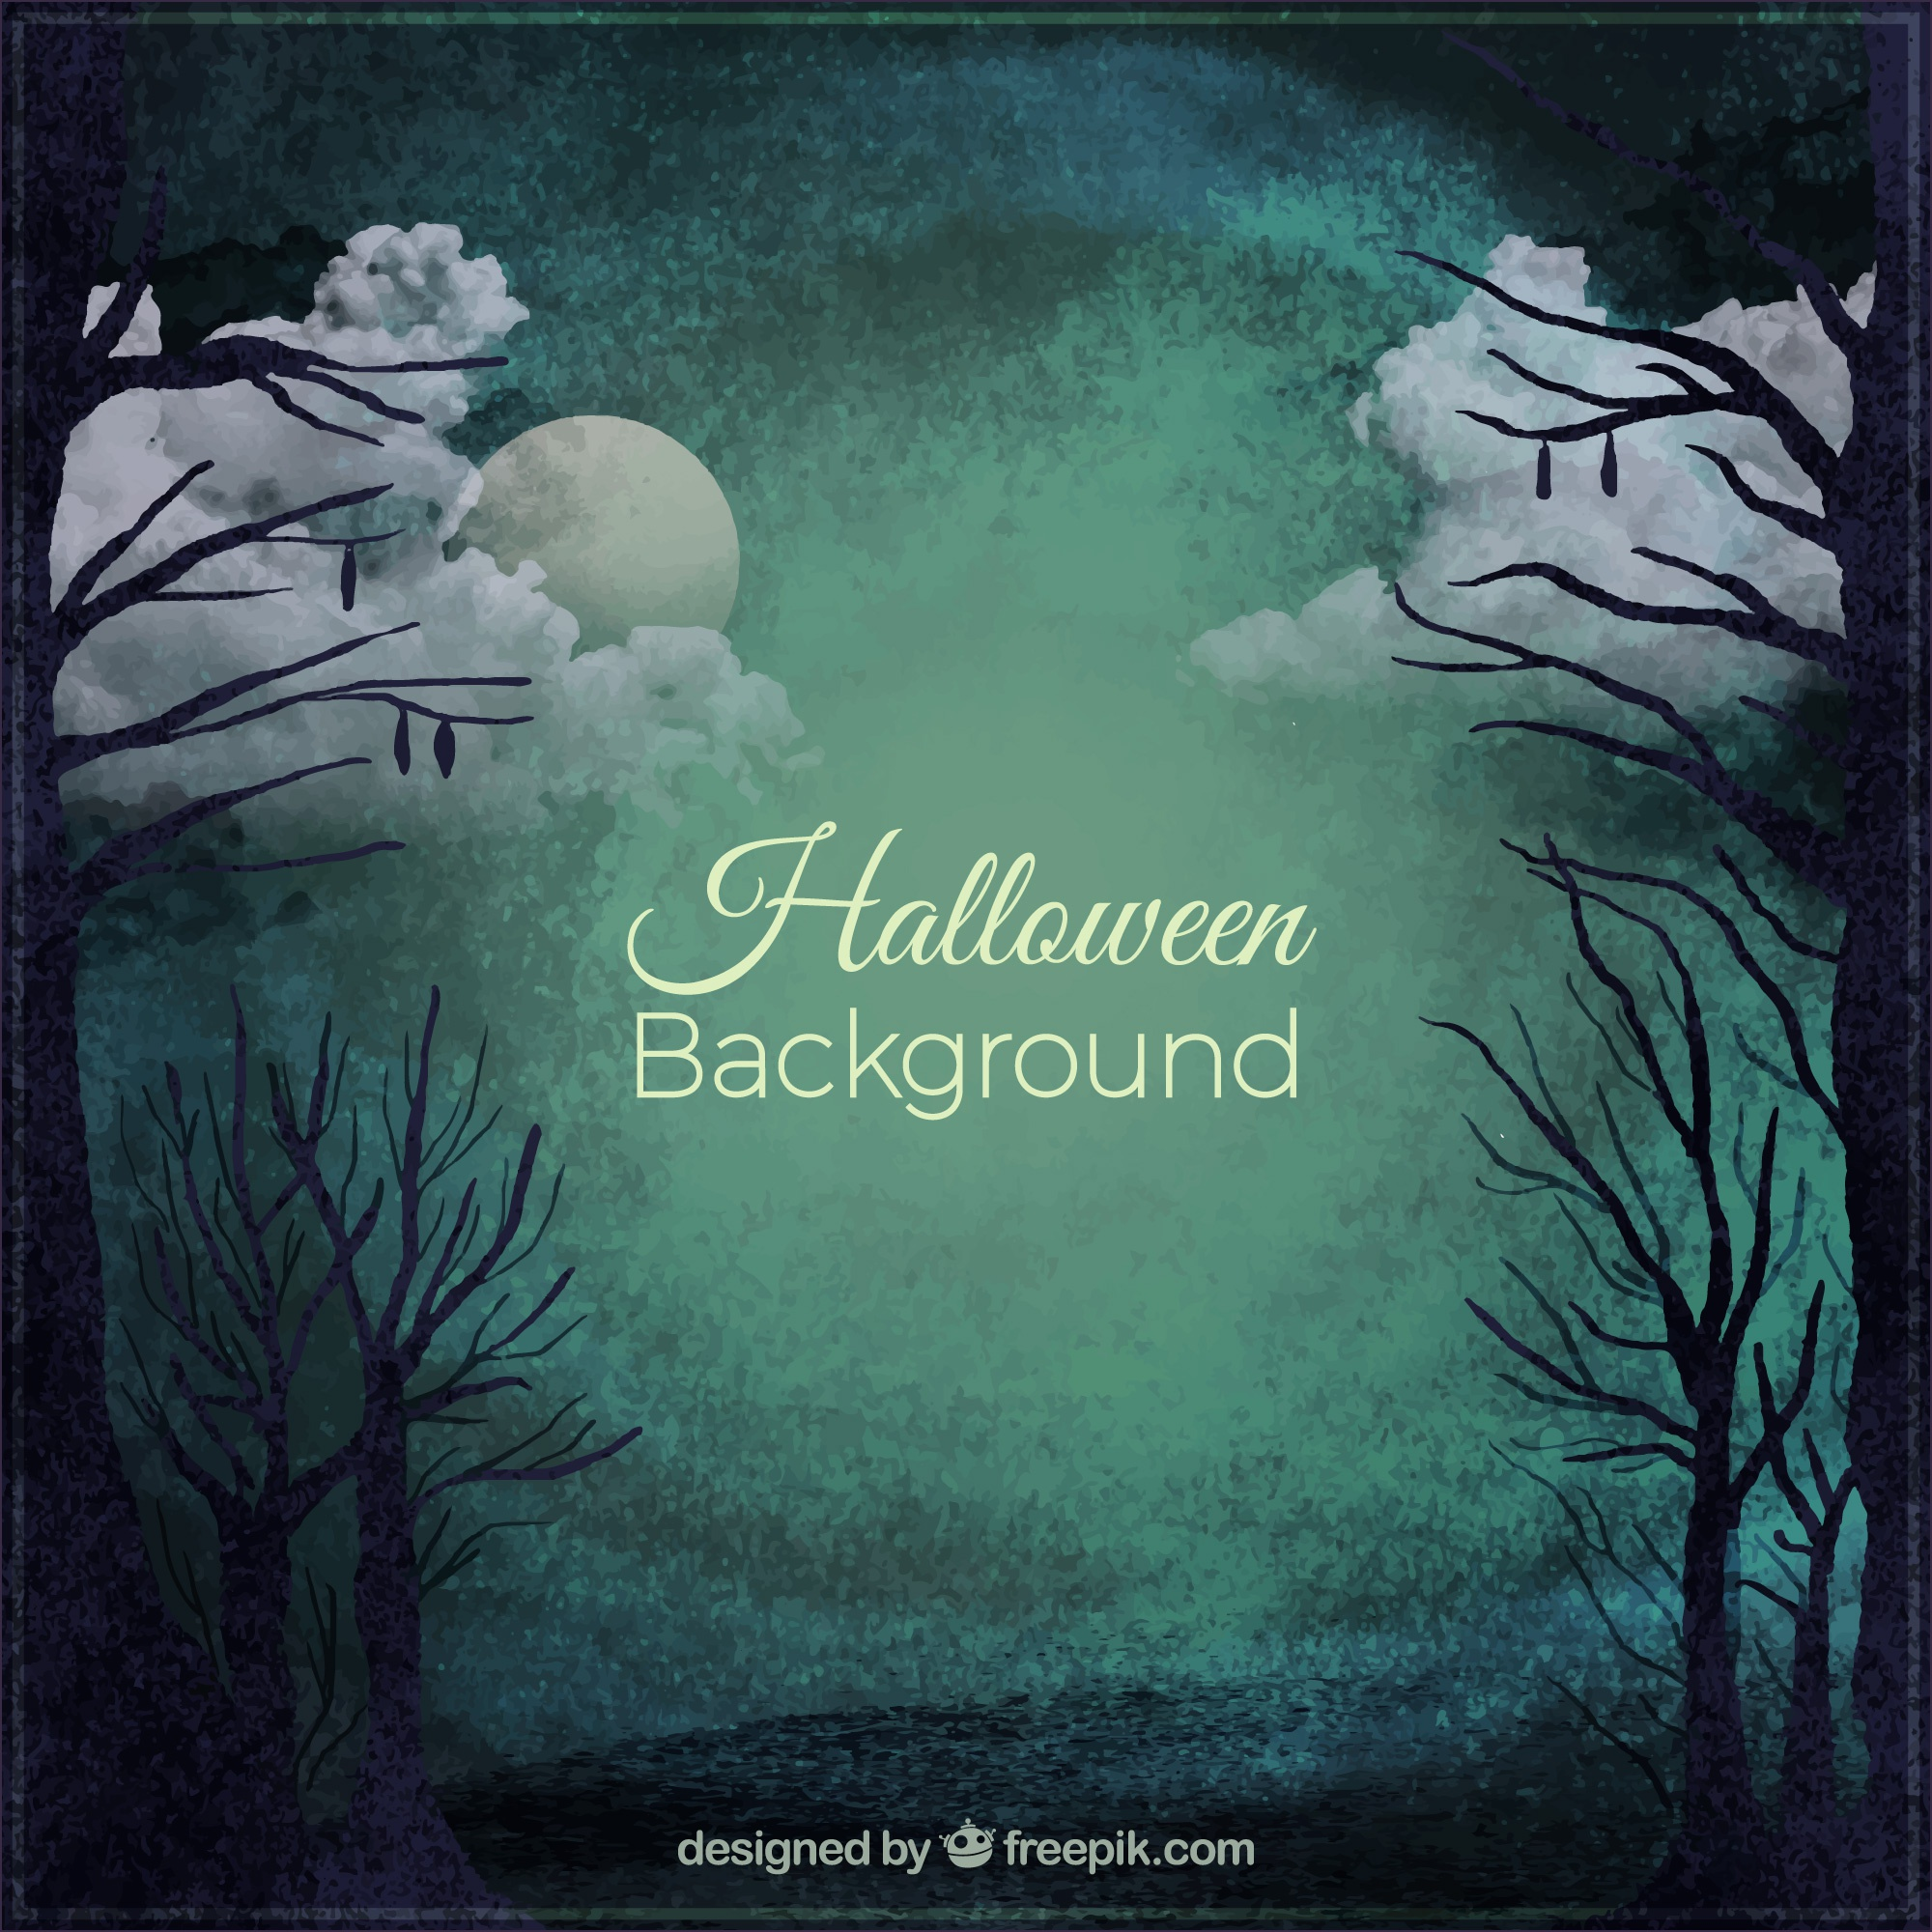 Spooky halloween background of a still forest by night